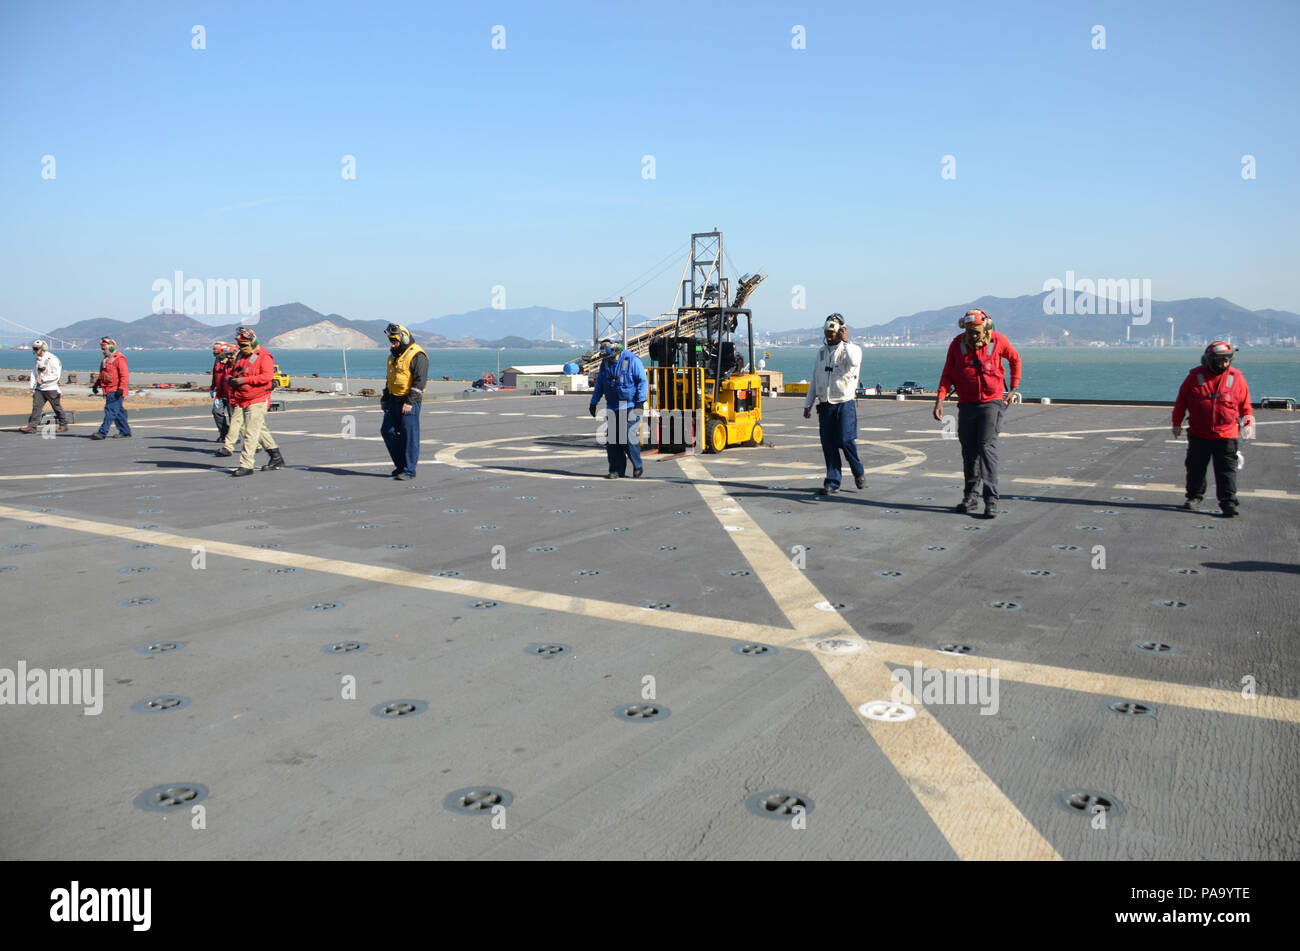 160310-N-WJ640-047 GWANGYANG, South Korea (Mar. 10, 2016)—Civilian Mariners on board dry cargo/ammunition ship USNS Sacagawea (T-AKE 2) conduct a foreign-object-damage inspection before flight operations, March 10. The Sacagewea was one of three MPF ships that offloaded her cargo in support of Exercise Ssang Yong 16, under the Exercise Freedom Banner 16 directive. (U.S. Navy photo by Mass Communication Specialist 3rd Class Madailein Abbott/Released) Stock Photo